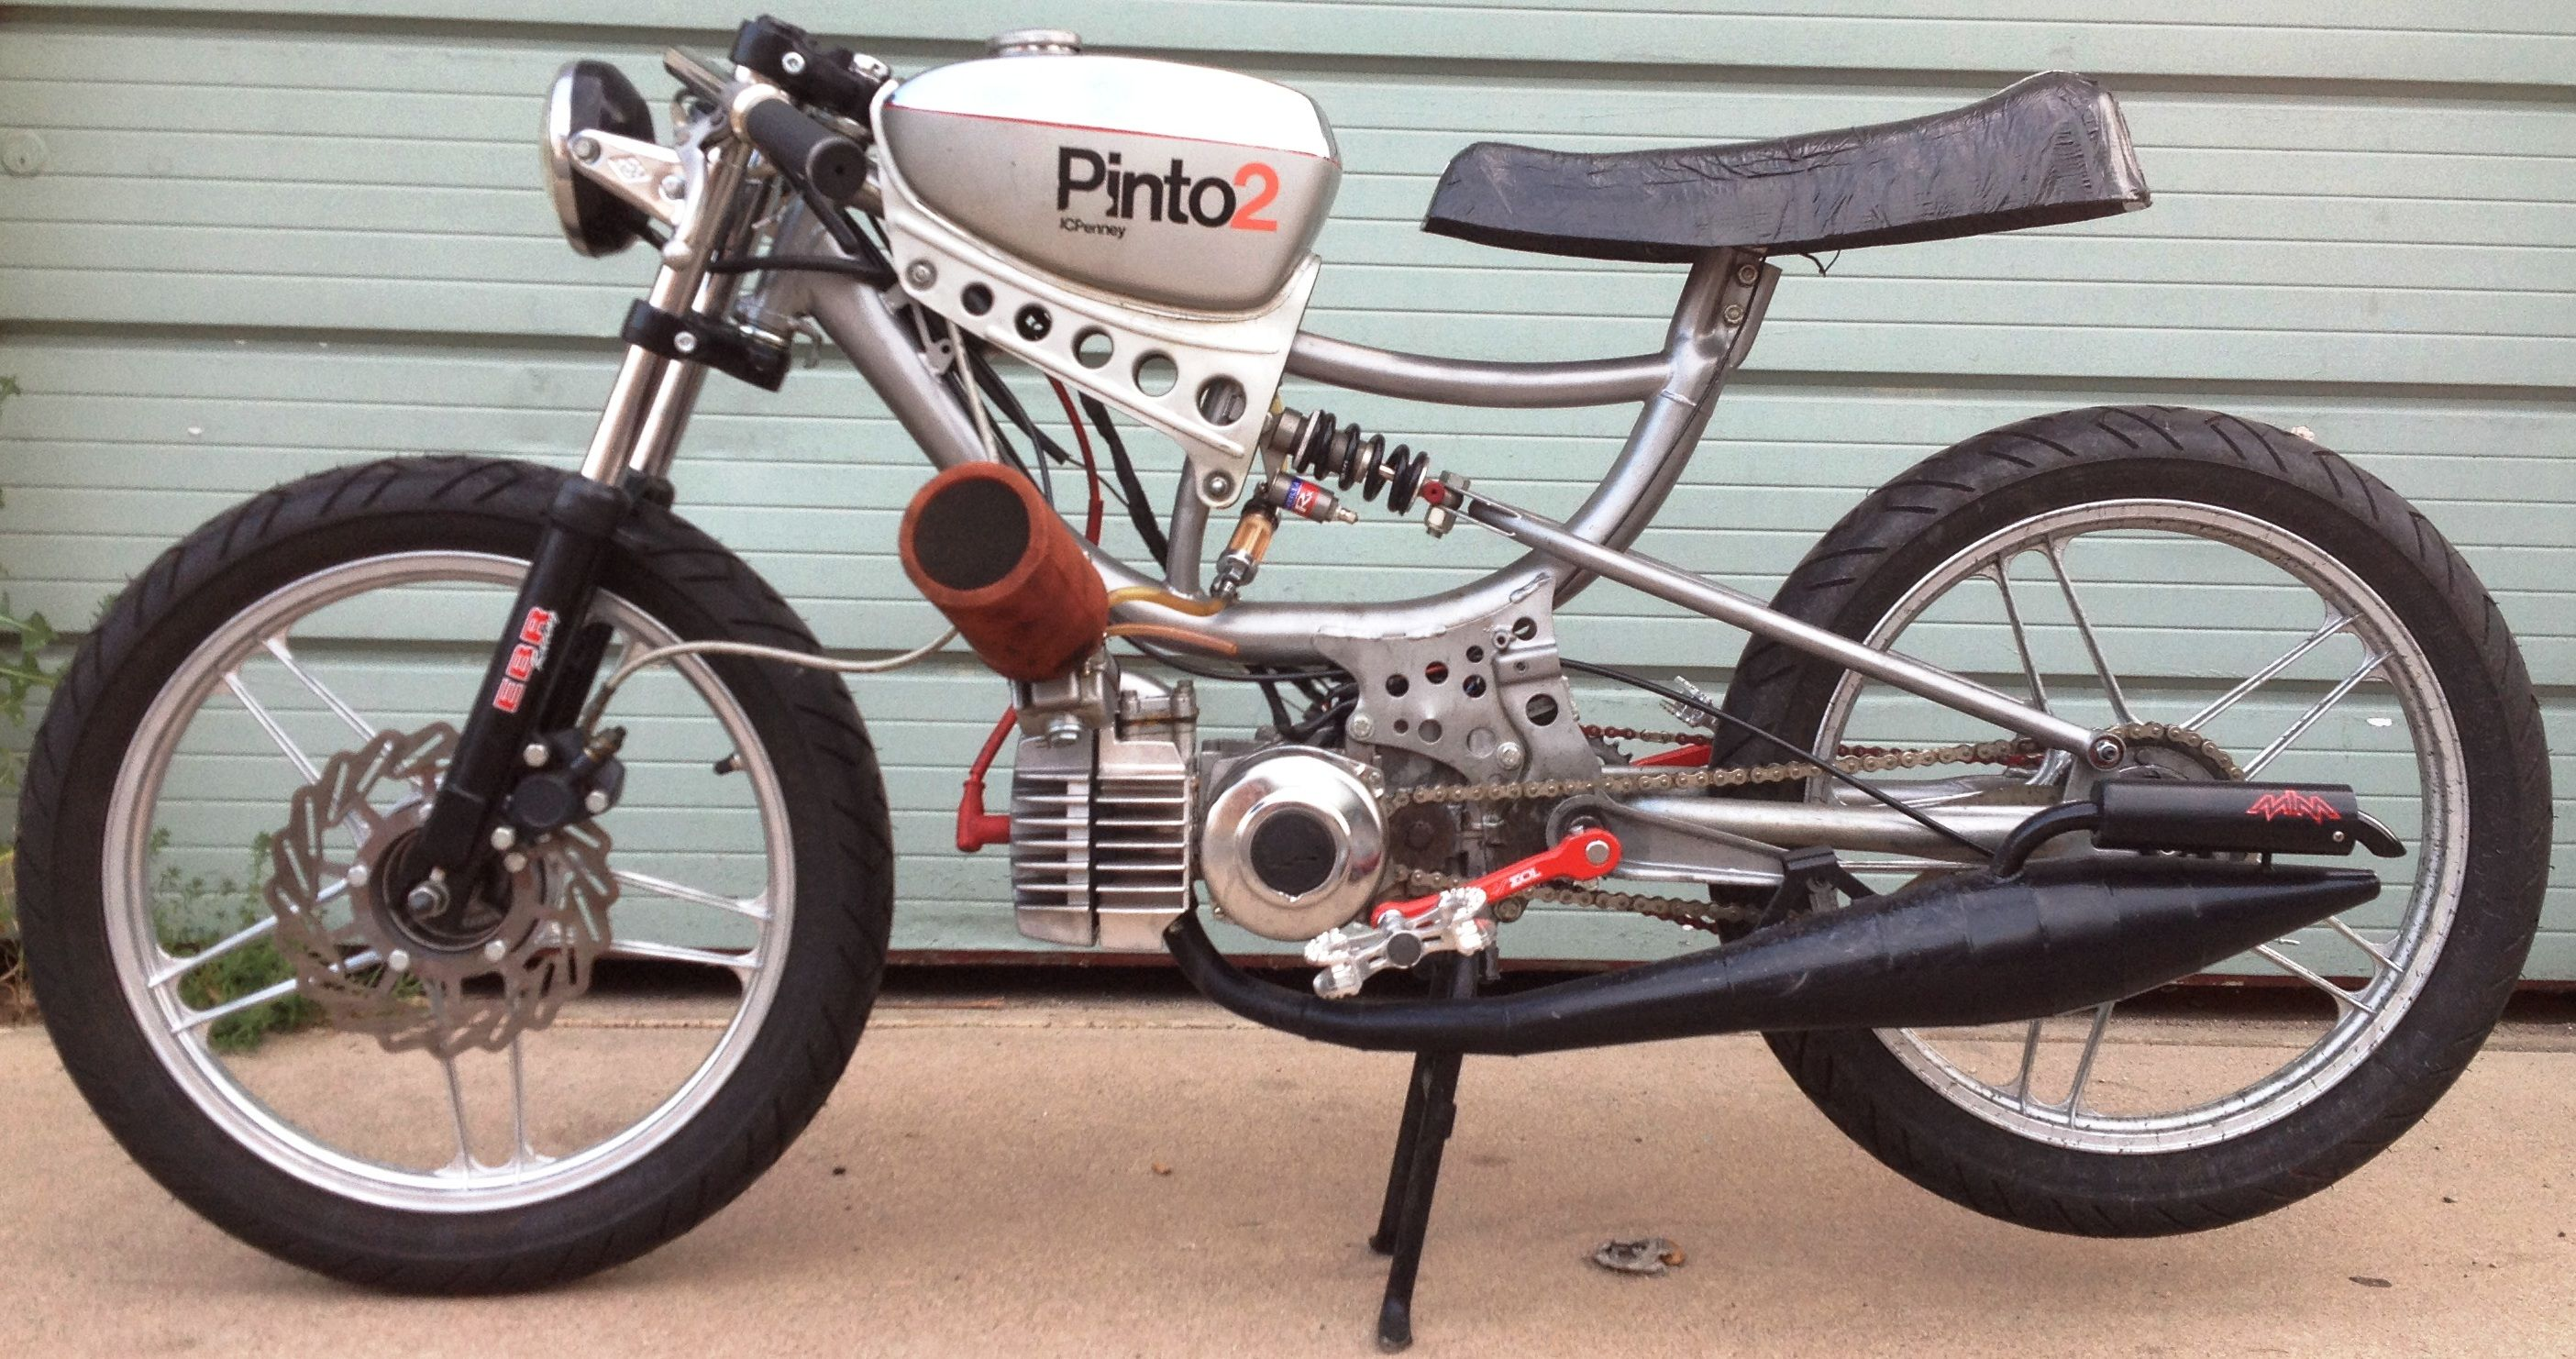 Custom Pinto moped with EBR crossbar and forks | cool vehicles